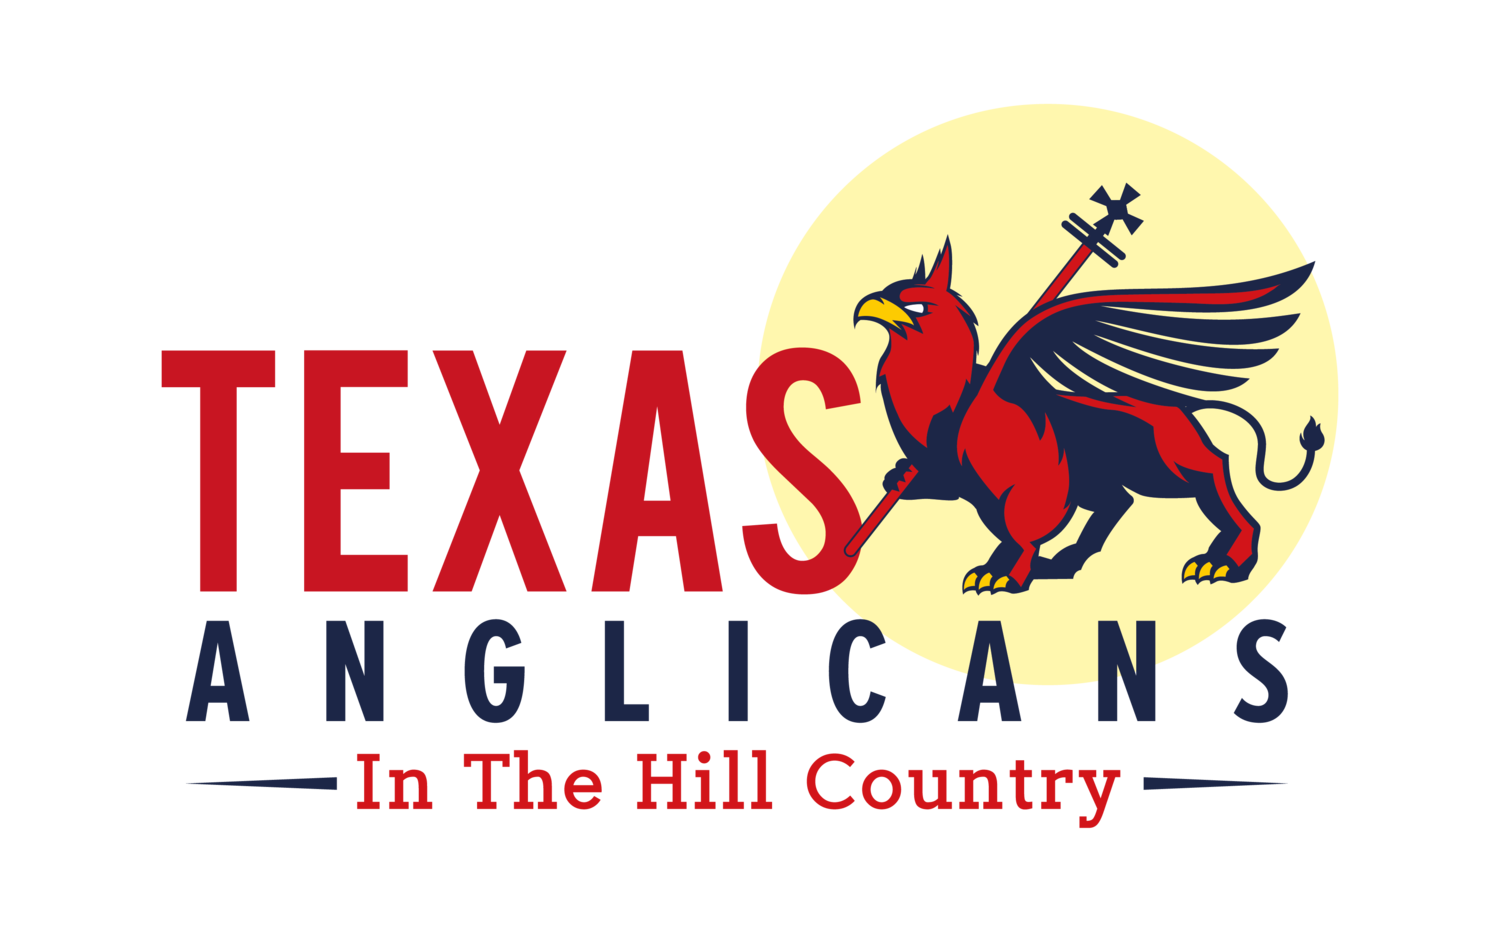 Texas Anglicans in the Hill Country